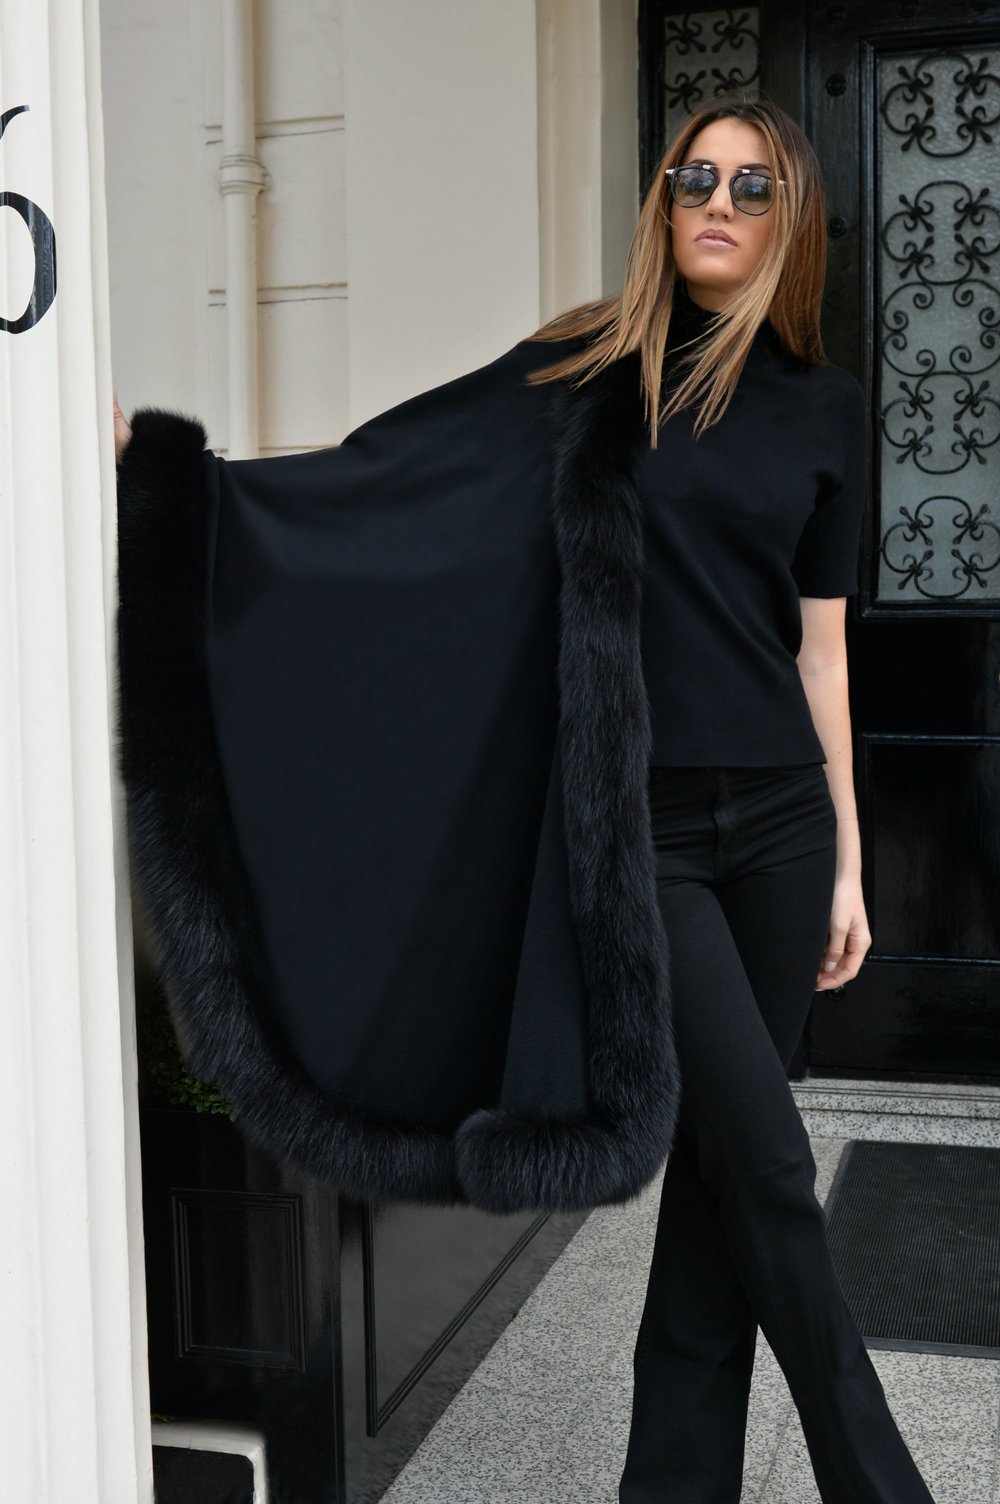 photo (3) #BlackFriday OOTD. Sharp and modern all black look. Ultra soft black cashmere cape with fur. Worn by Fashion Blogger Maureen Sophie Kragt from TheVanillawoods Blog.